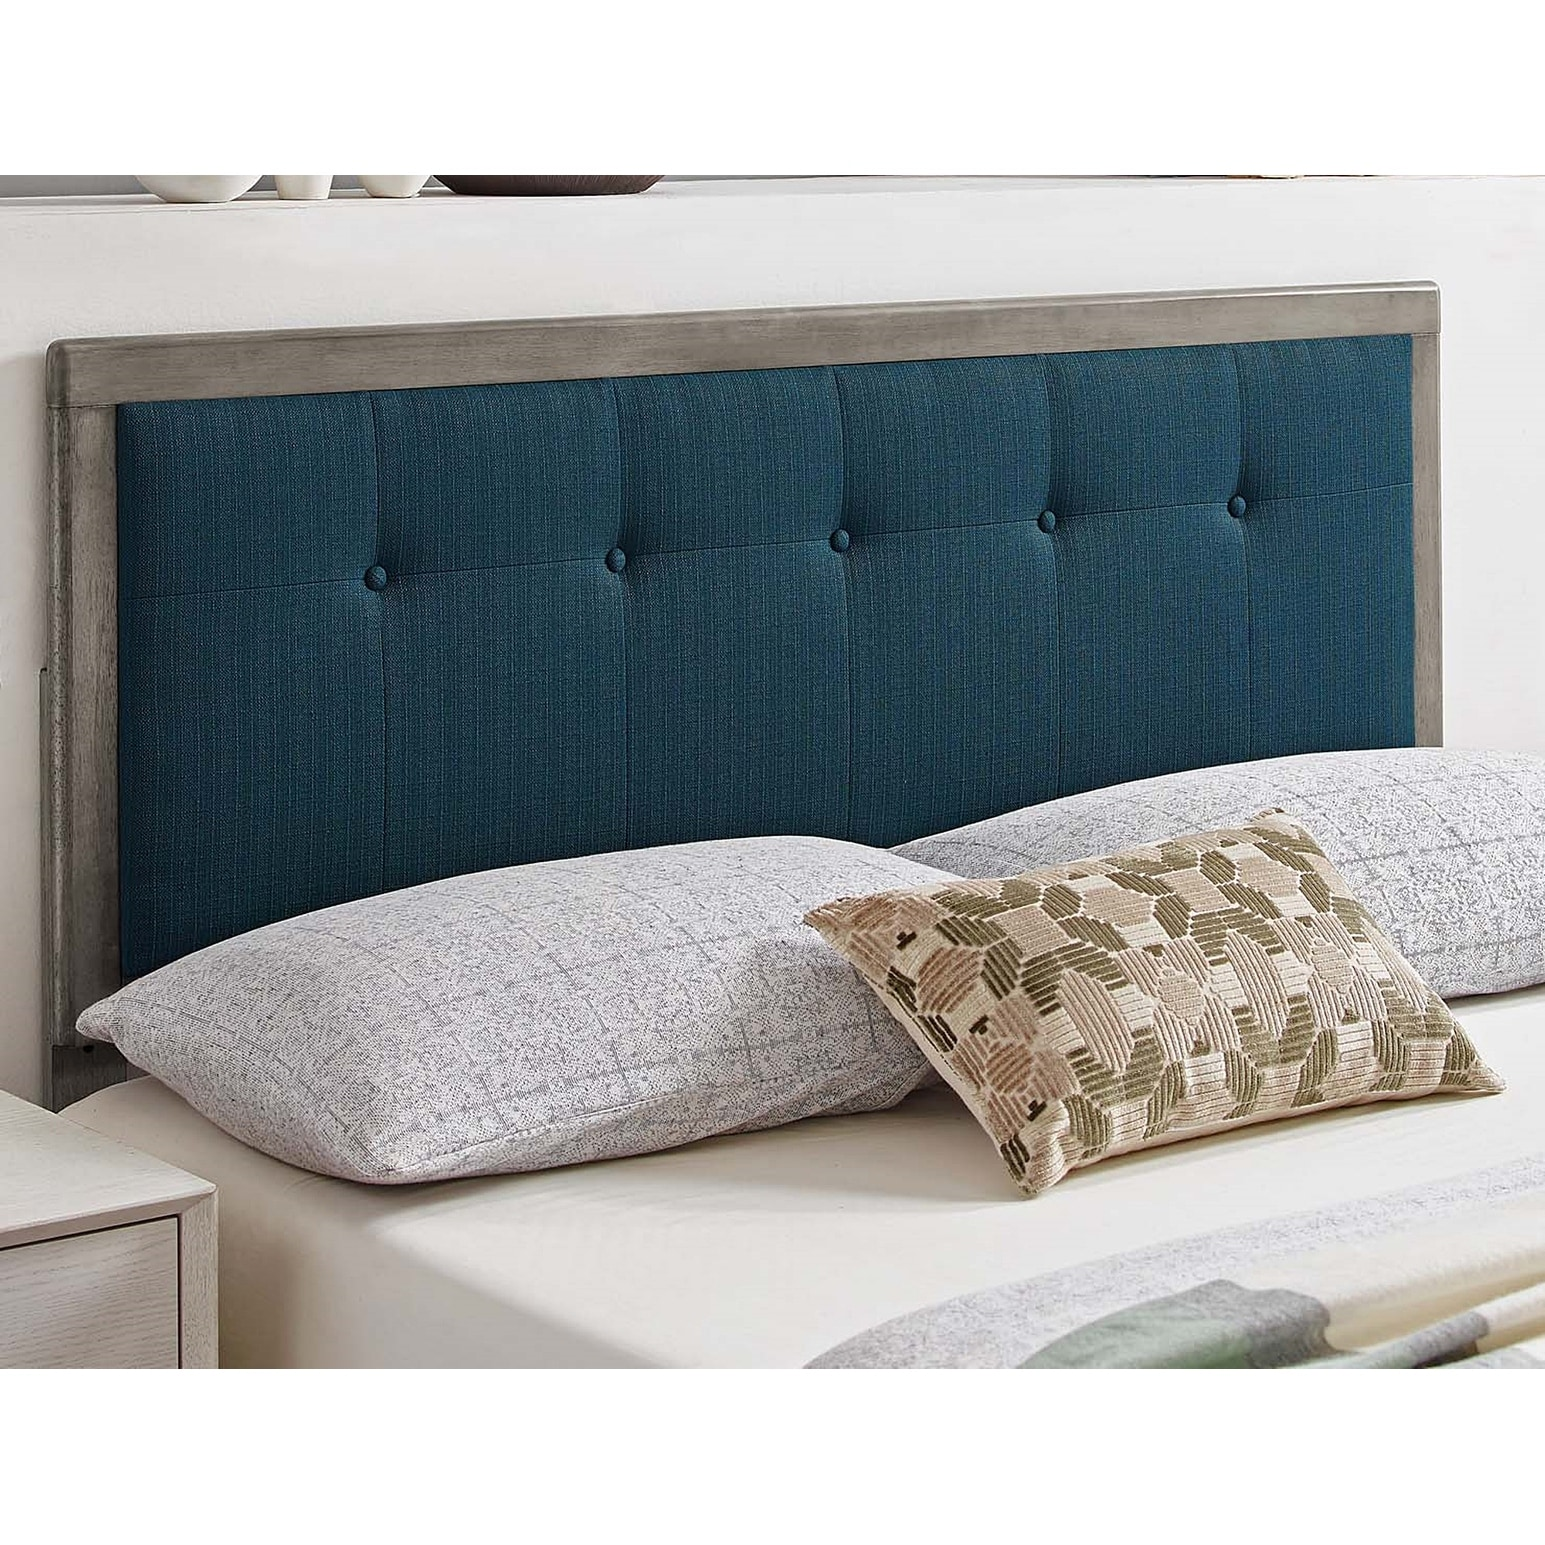 Marlin Traditional Blue Fabric Button Tufted King Size Grey Wooden Headboard On Sale Overstock 32158002